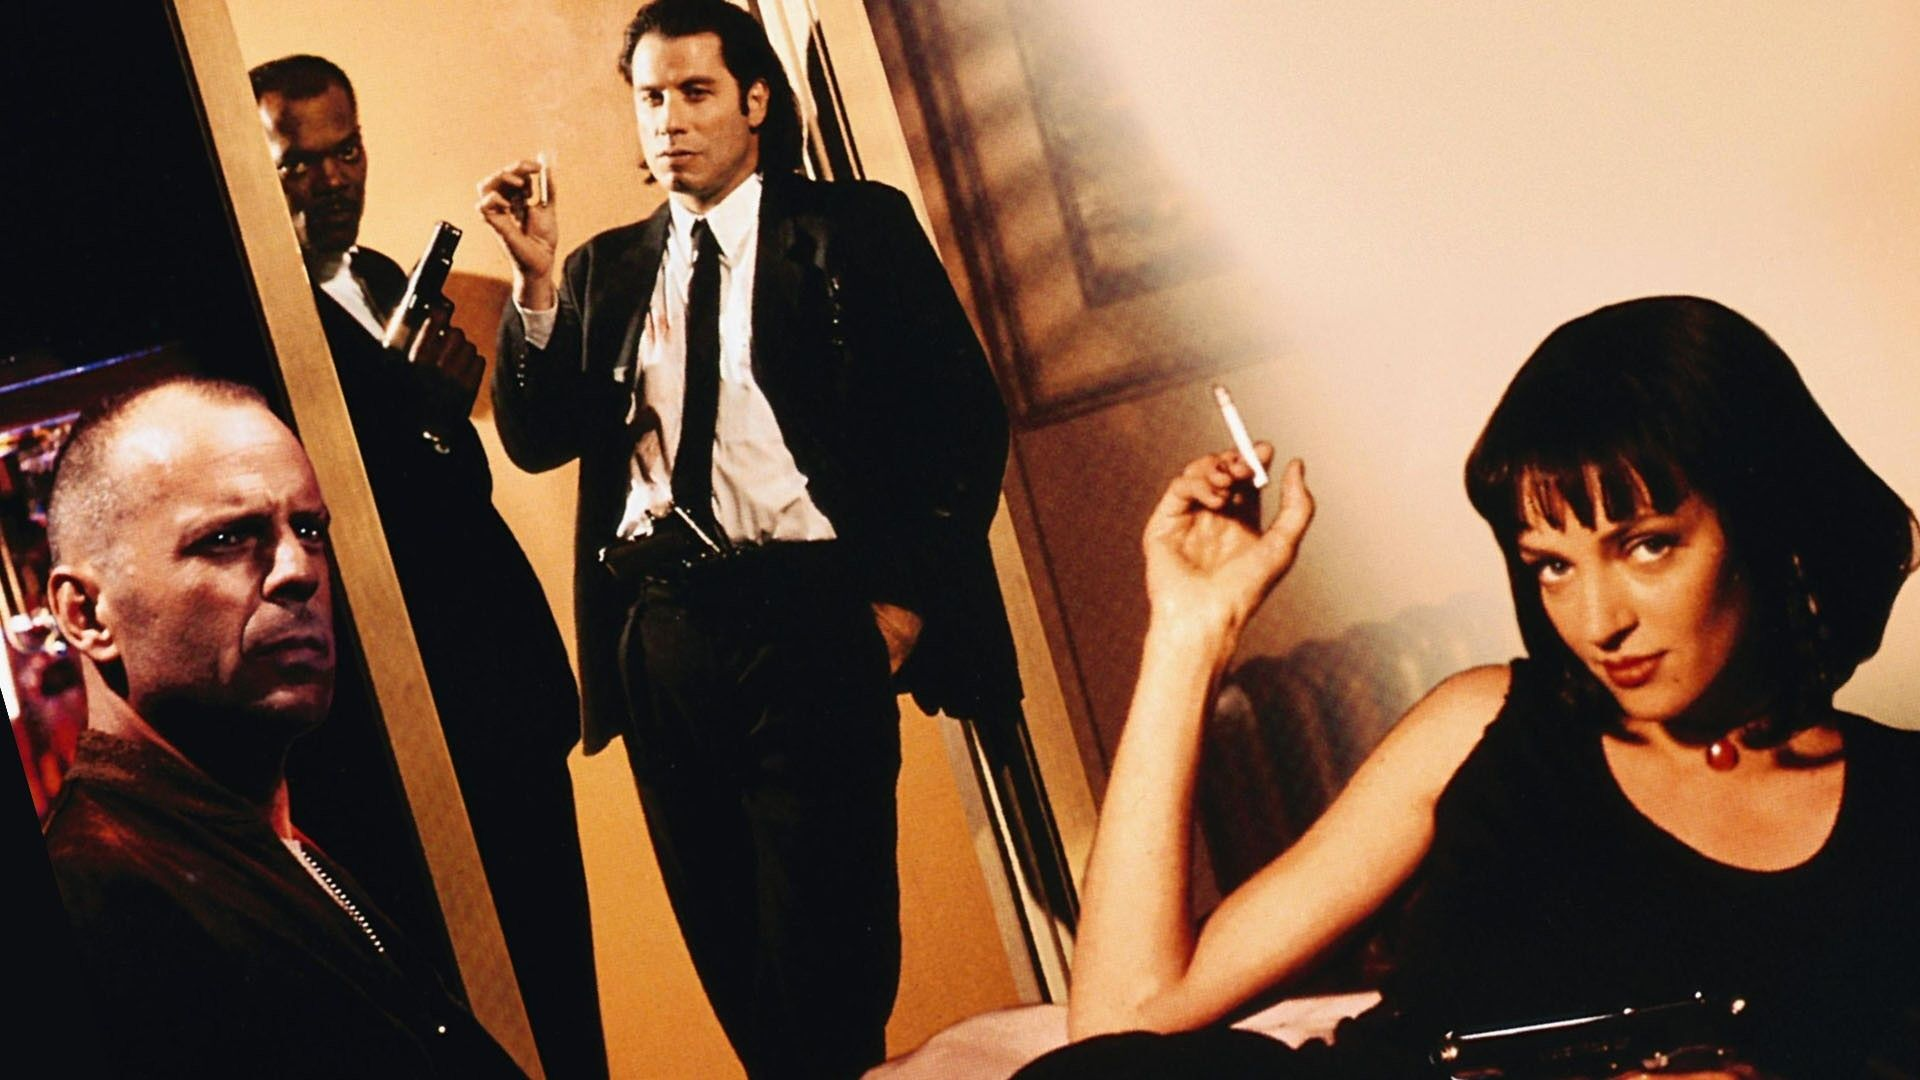 Free download pulp fiction 1994 movie full free movies downloads online have the best collection